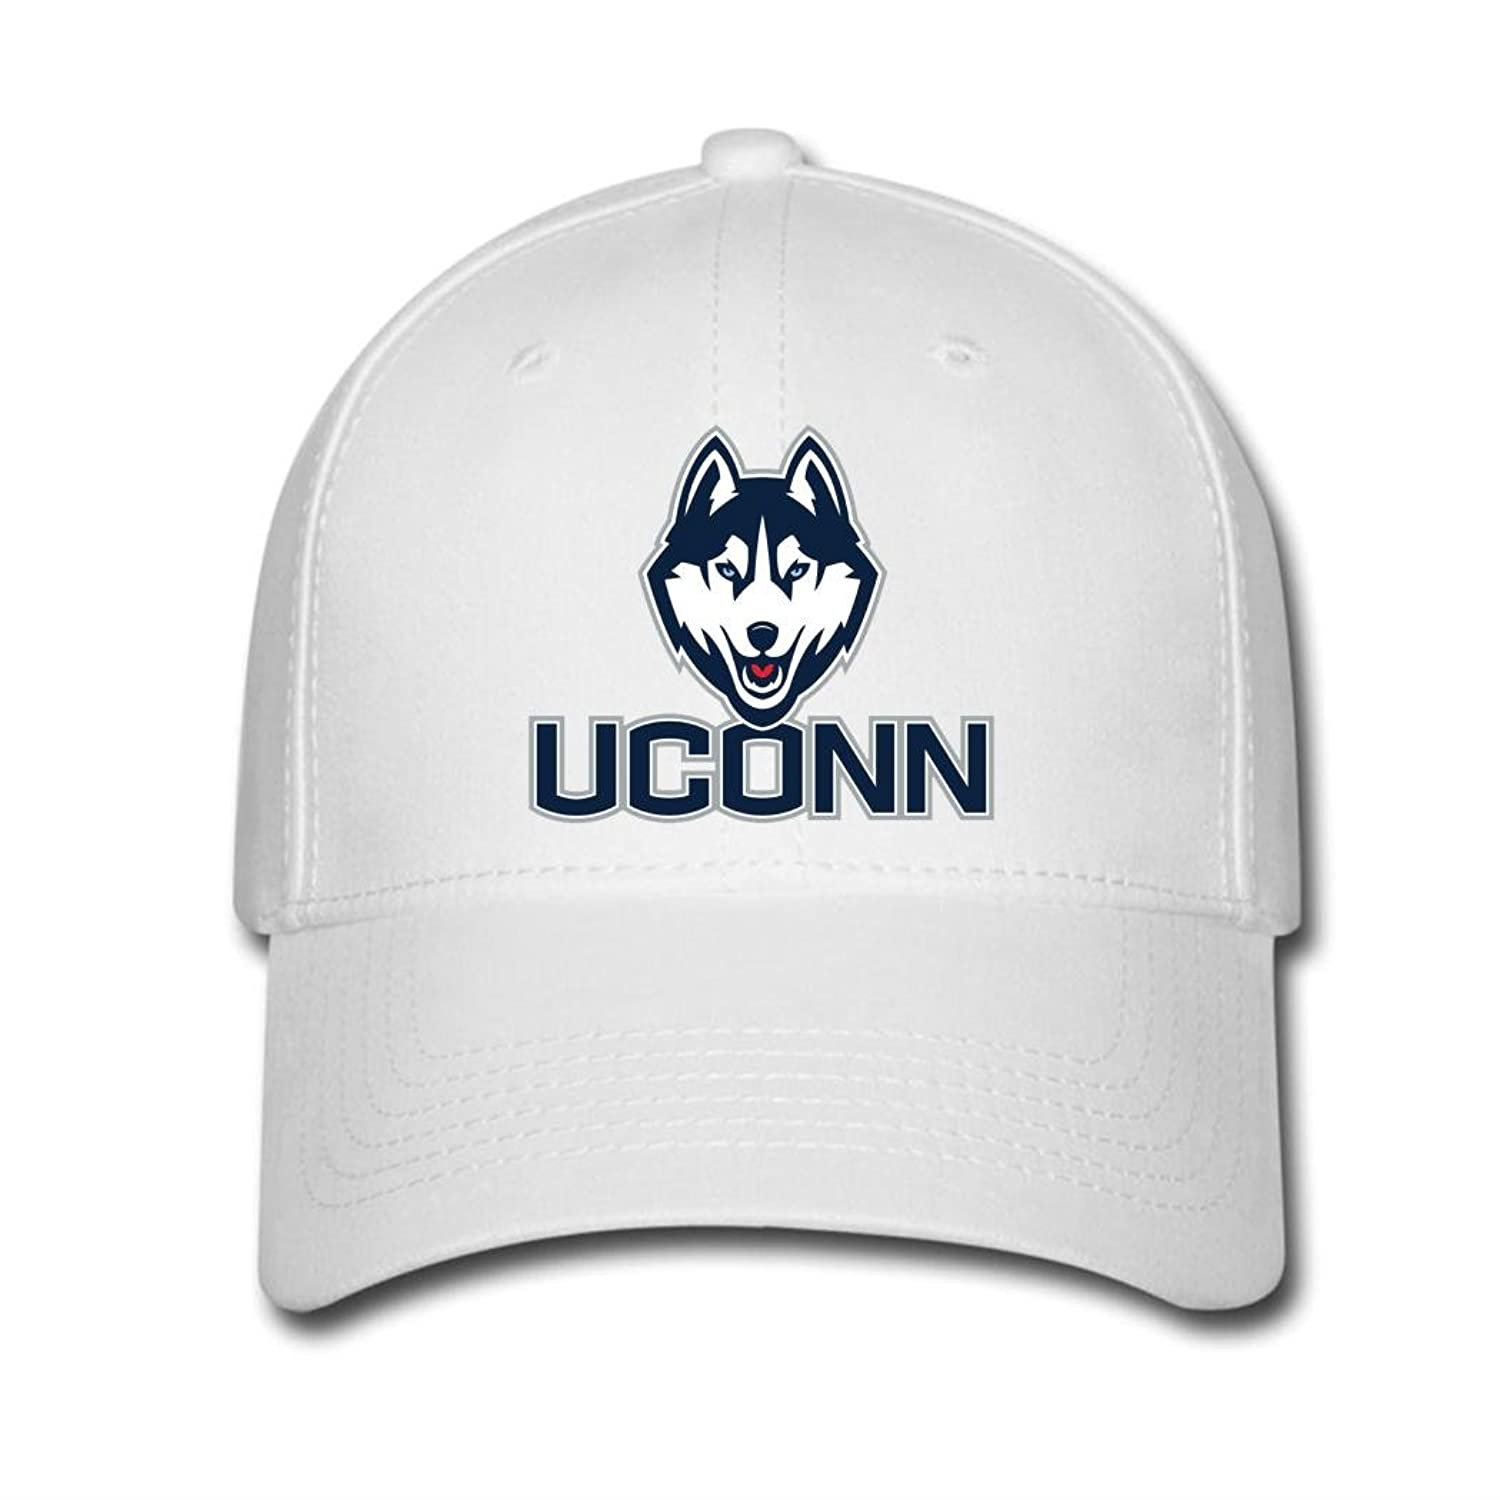 Uconn Huskies Logo Opeeda Adjustable Baseball Caps For Men/Women